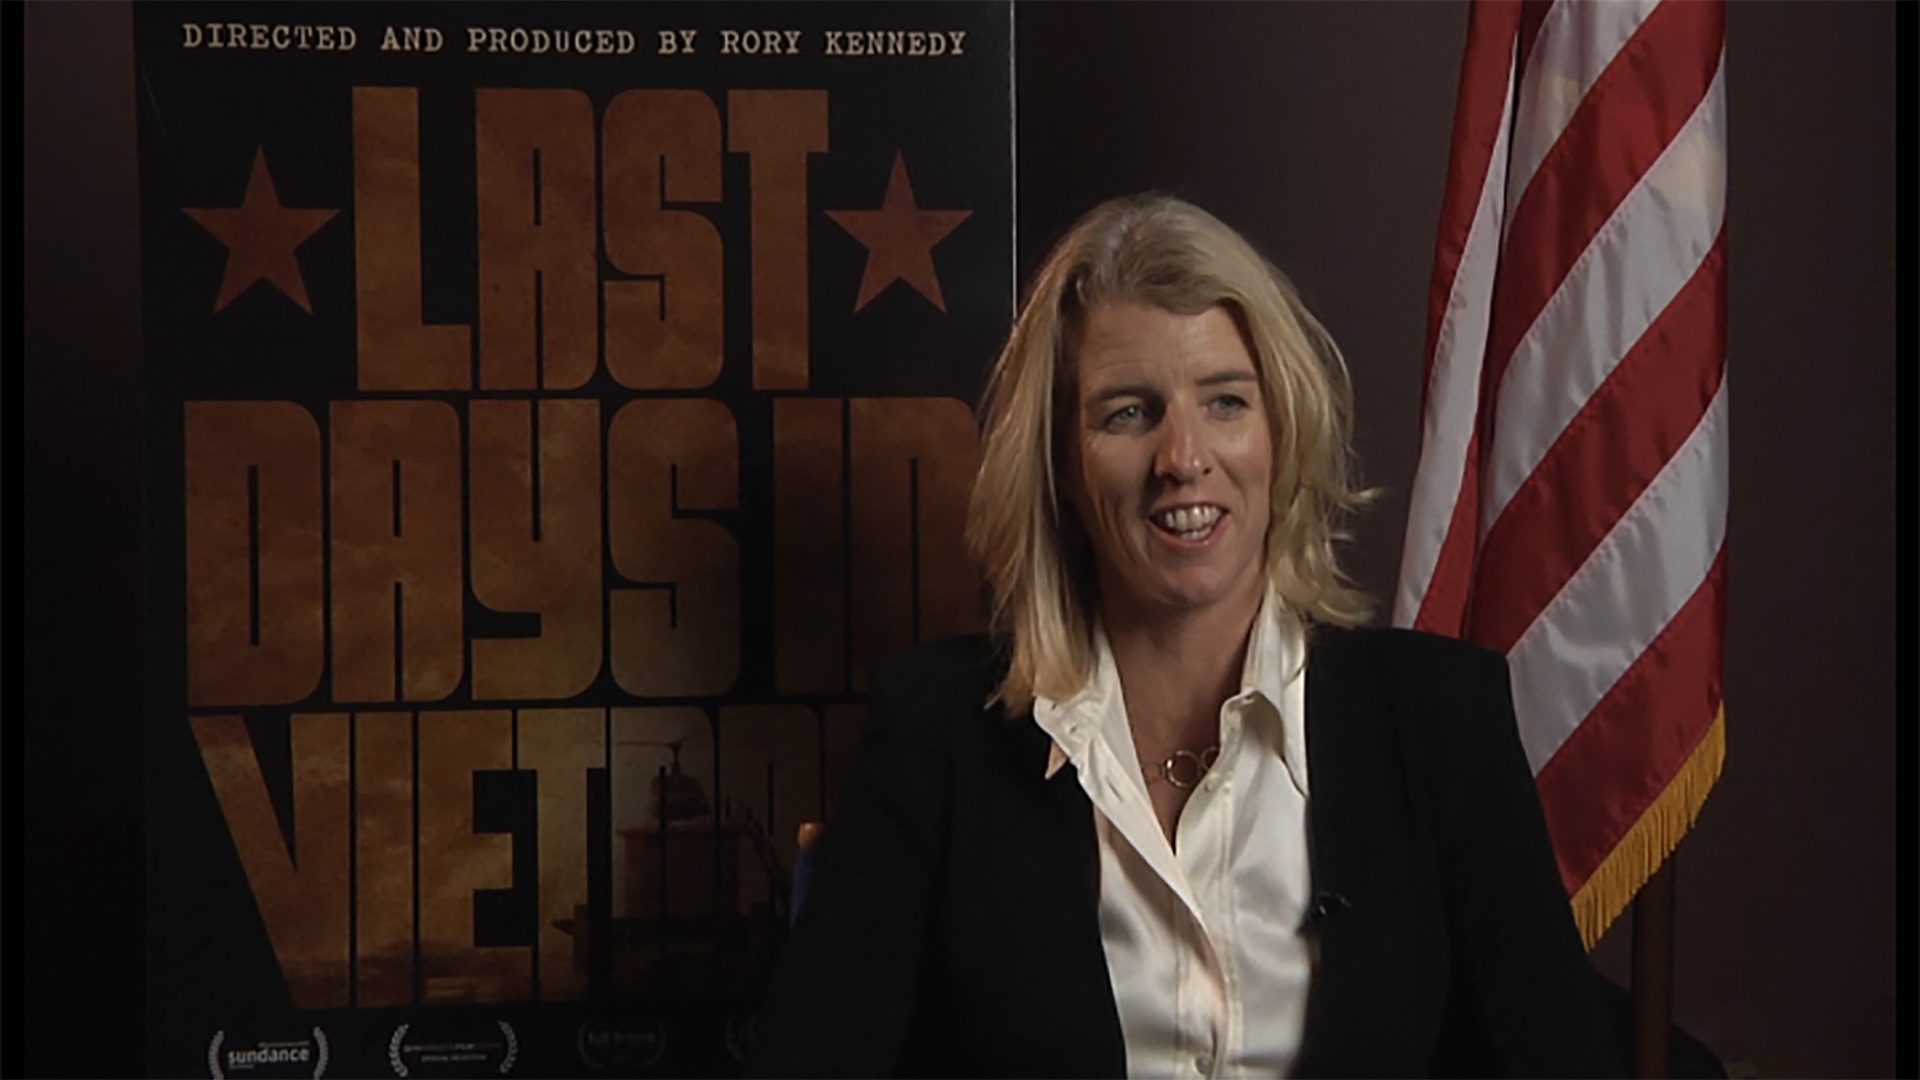 Behind the Scenes with Rory Kennedy